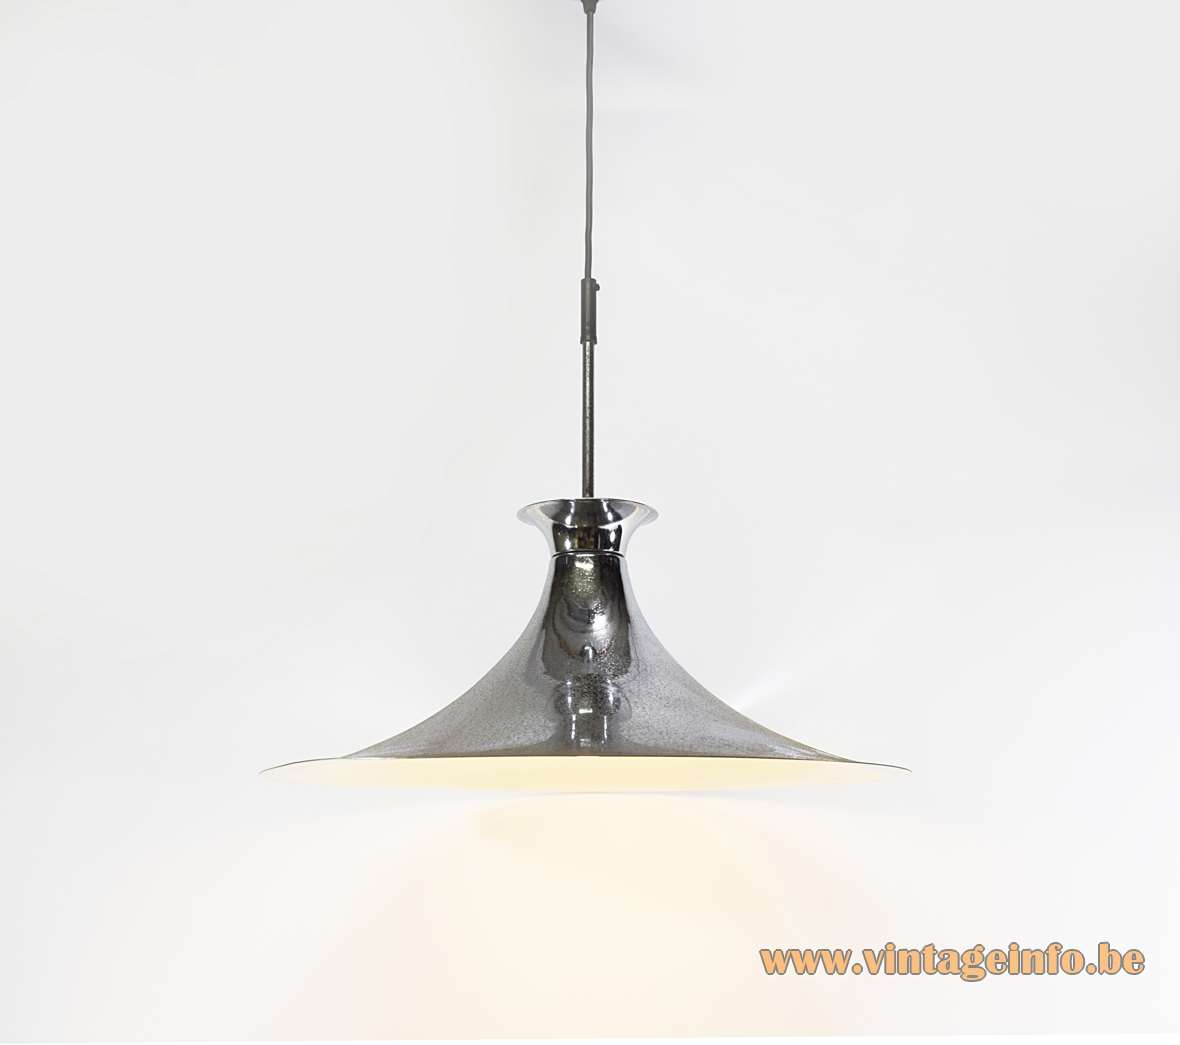 Chrome witch hat pendant lamp iron metal white painted inside 1960s 1970s MCM Massive porcelain socket